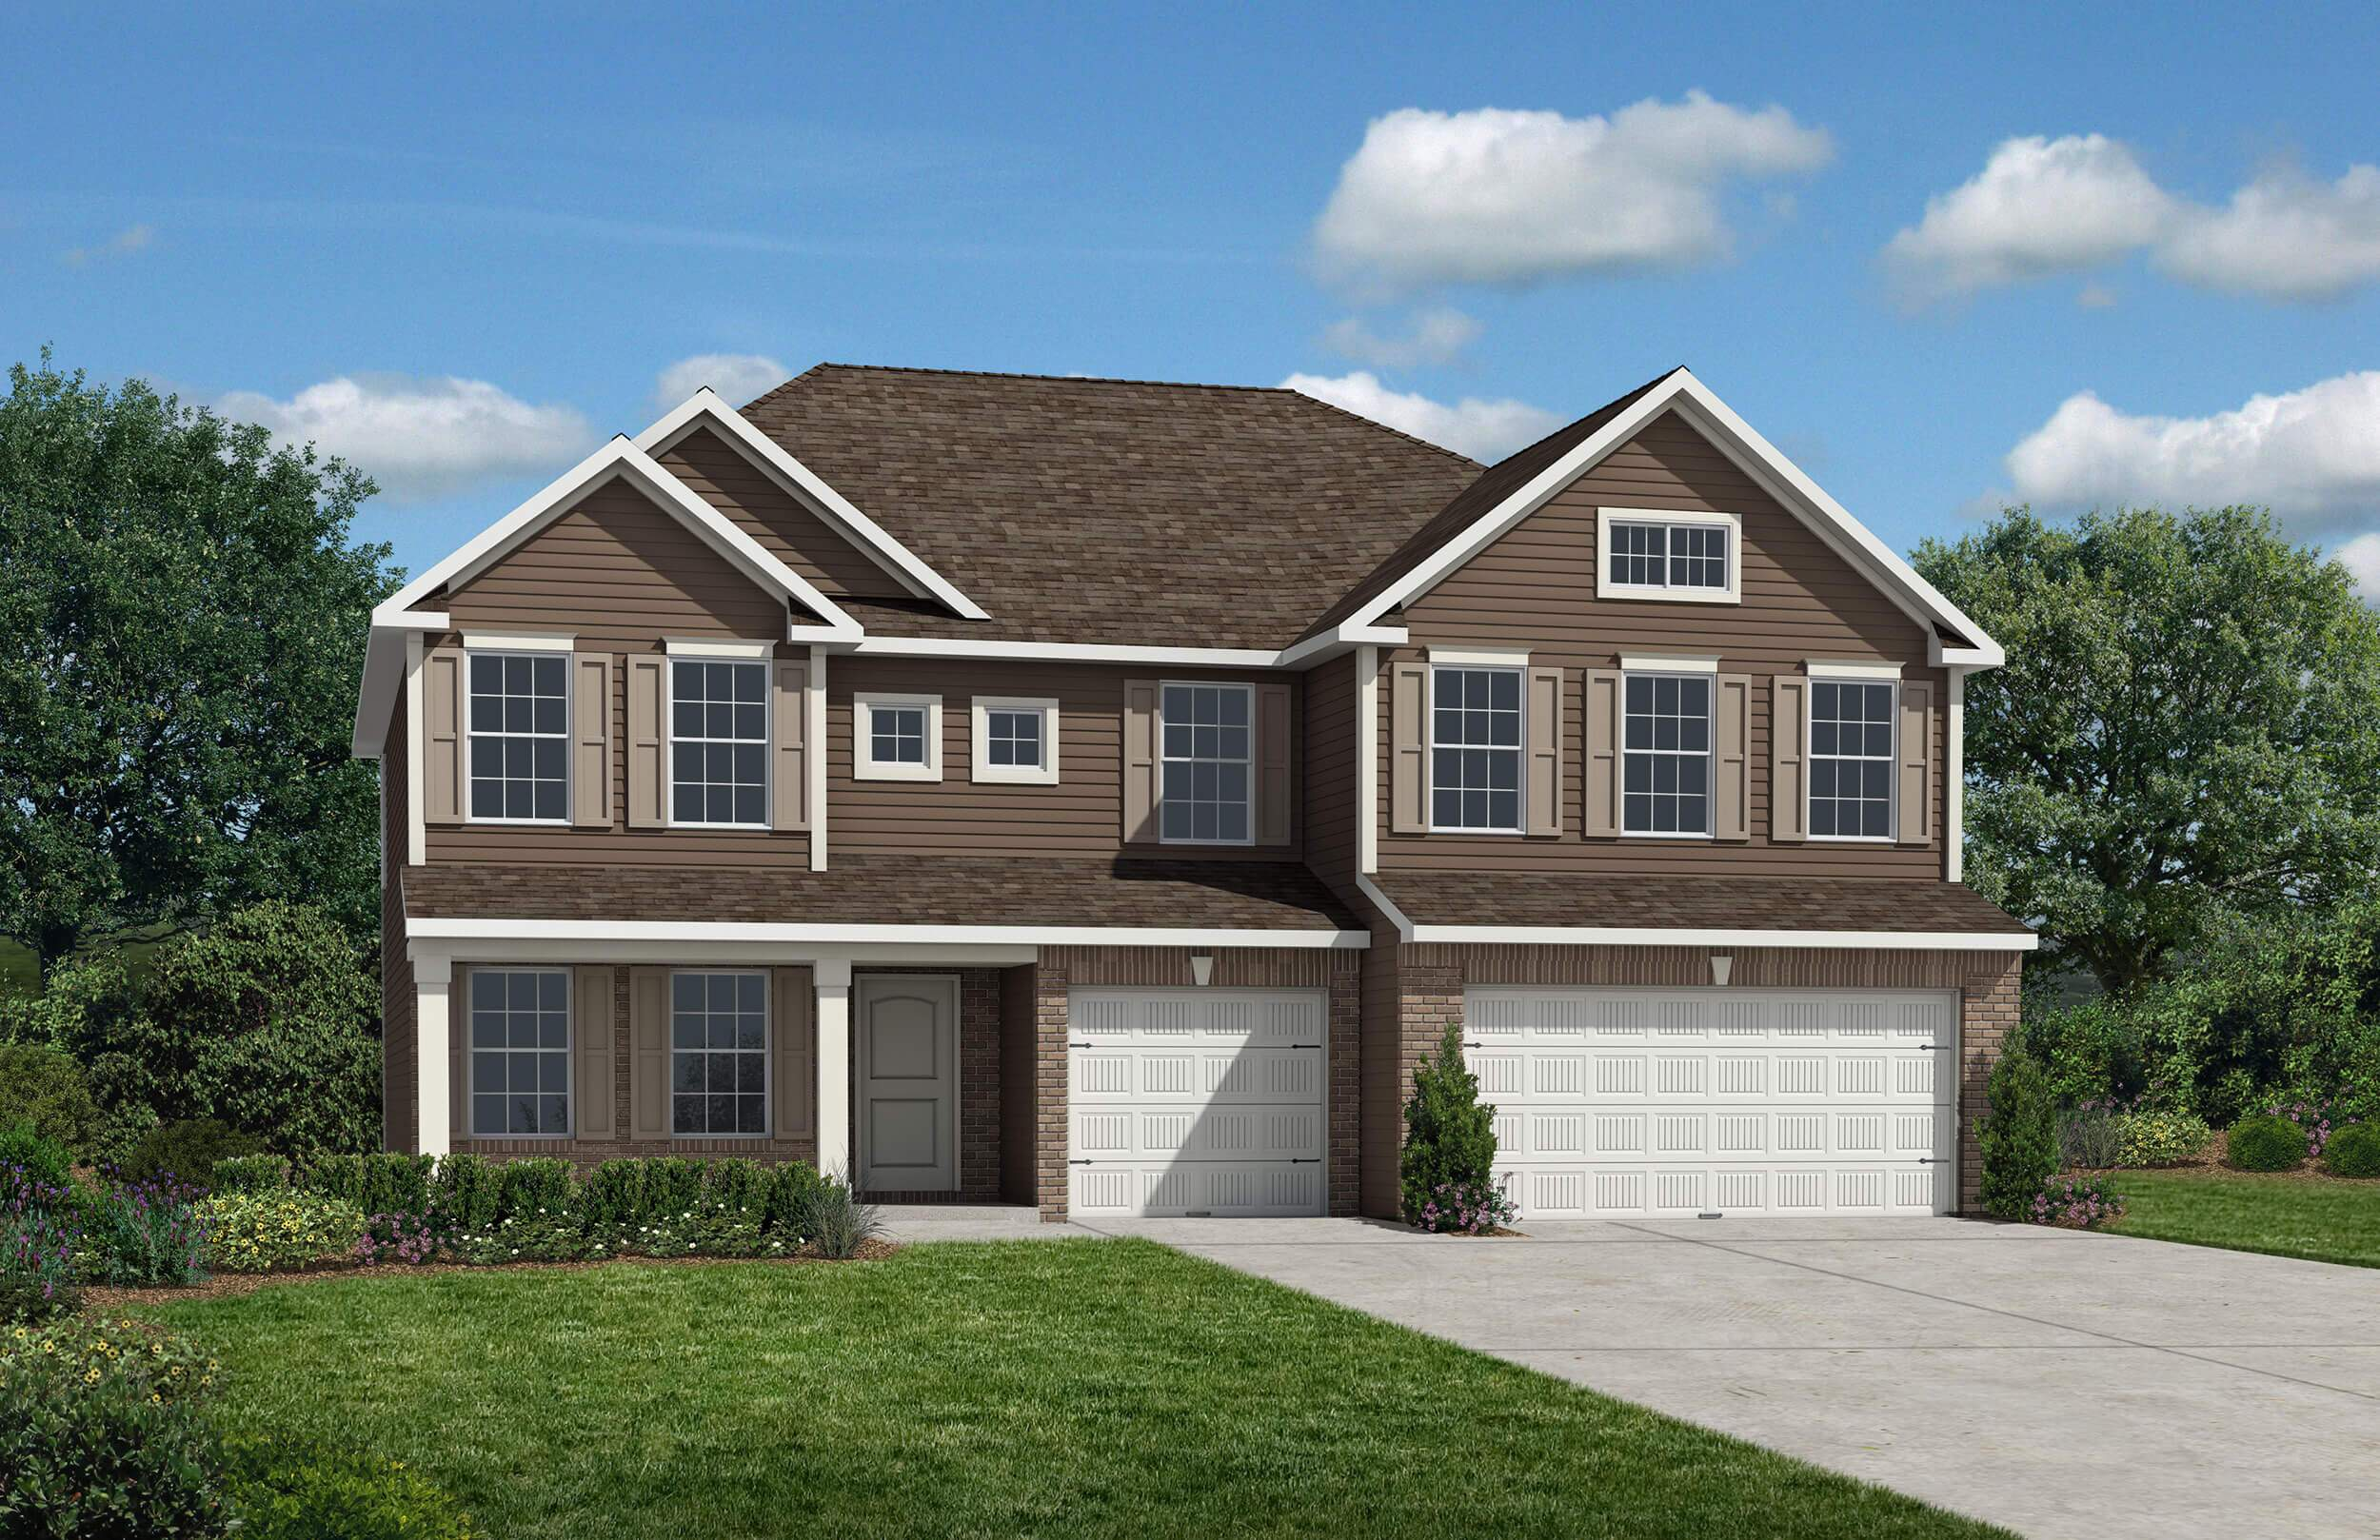 new homes for sale 46221 blogs workanyware co uk u2022 rh blogs workanyware co uk